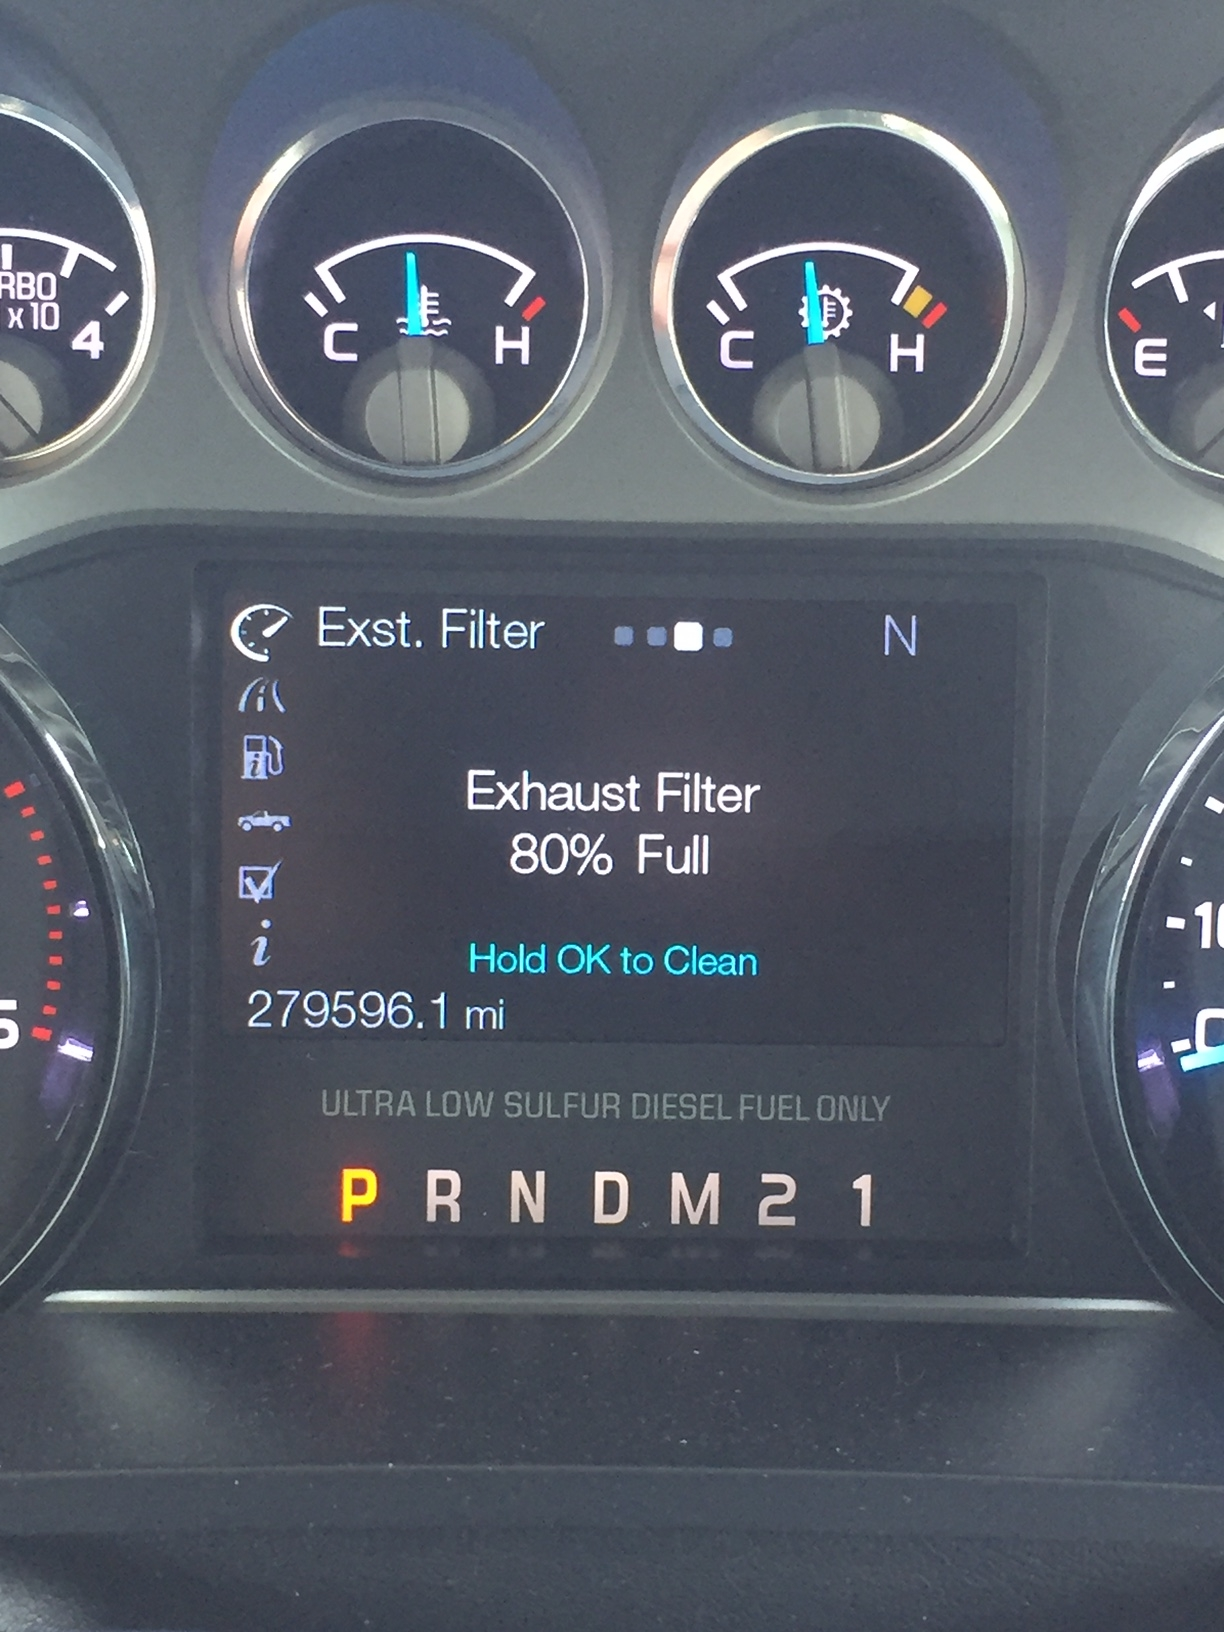 2016 Ford Trucks >> FORSCAN: Enable Exhaust Filter - WITHOUT DEALER - Page 17 ...